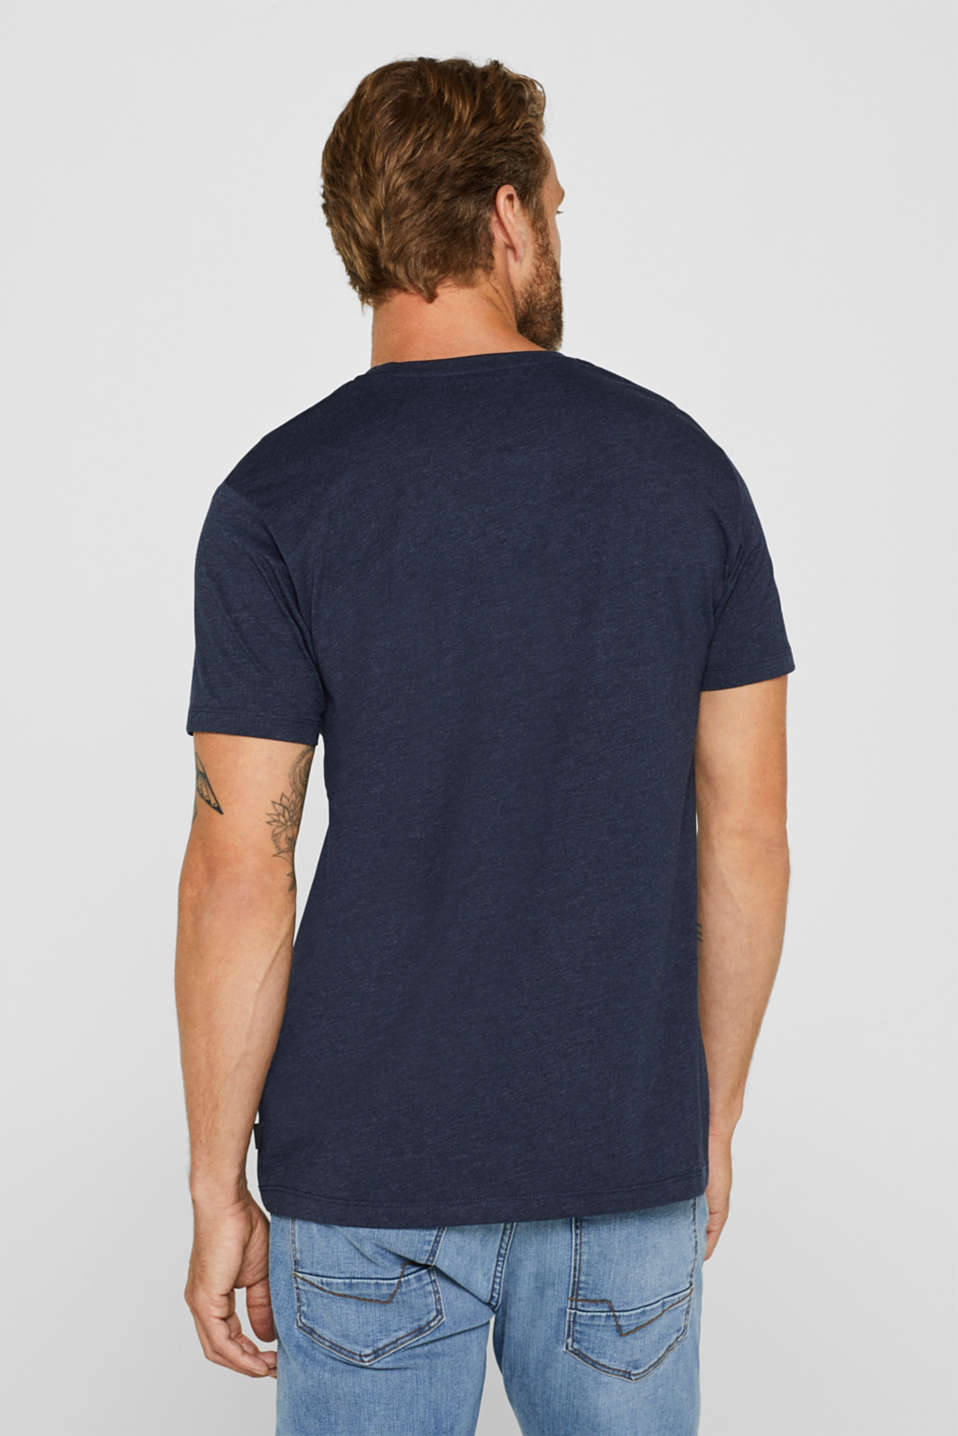 Jersey T-shirt with logo, made of blended cotton, NAVY, detail image number 3